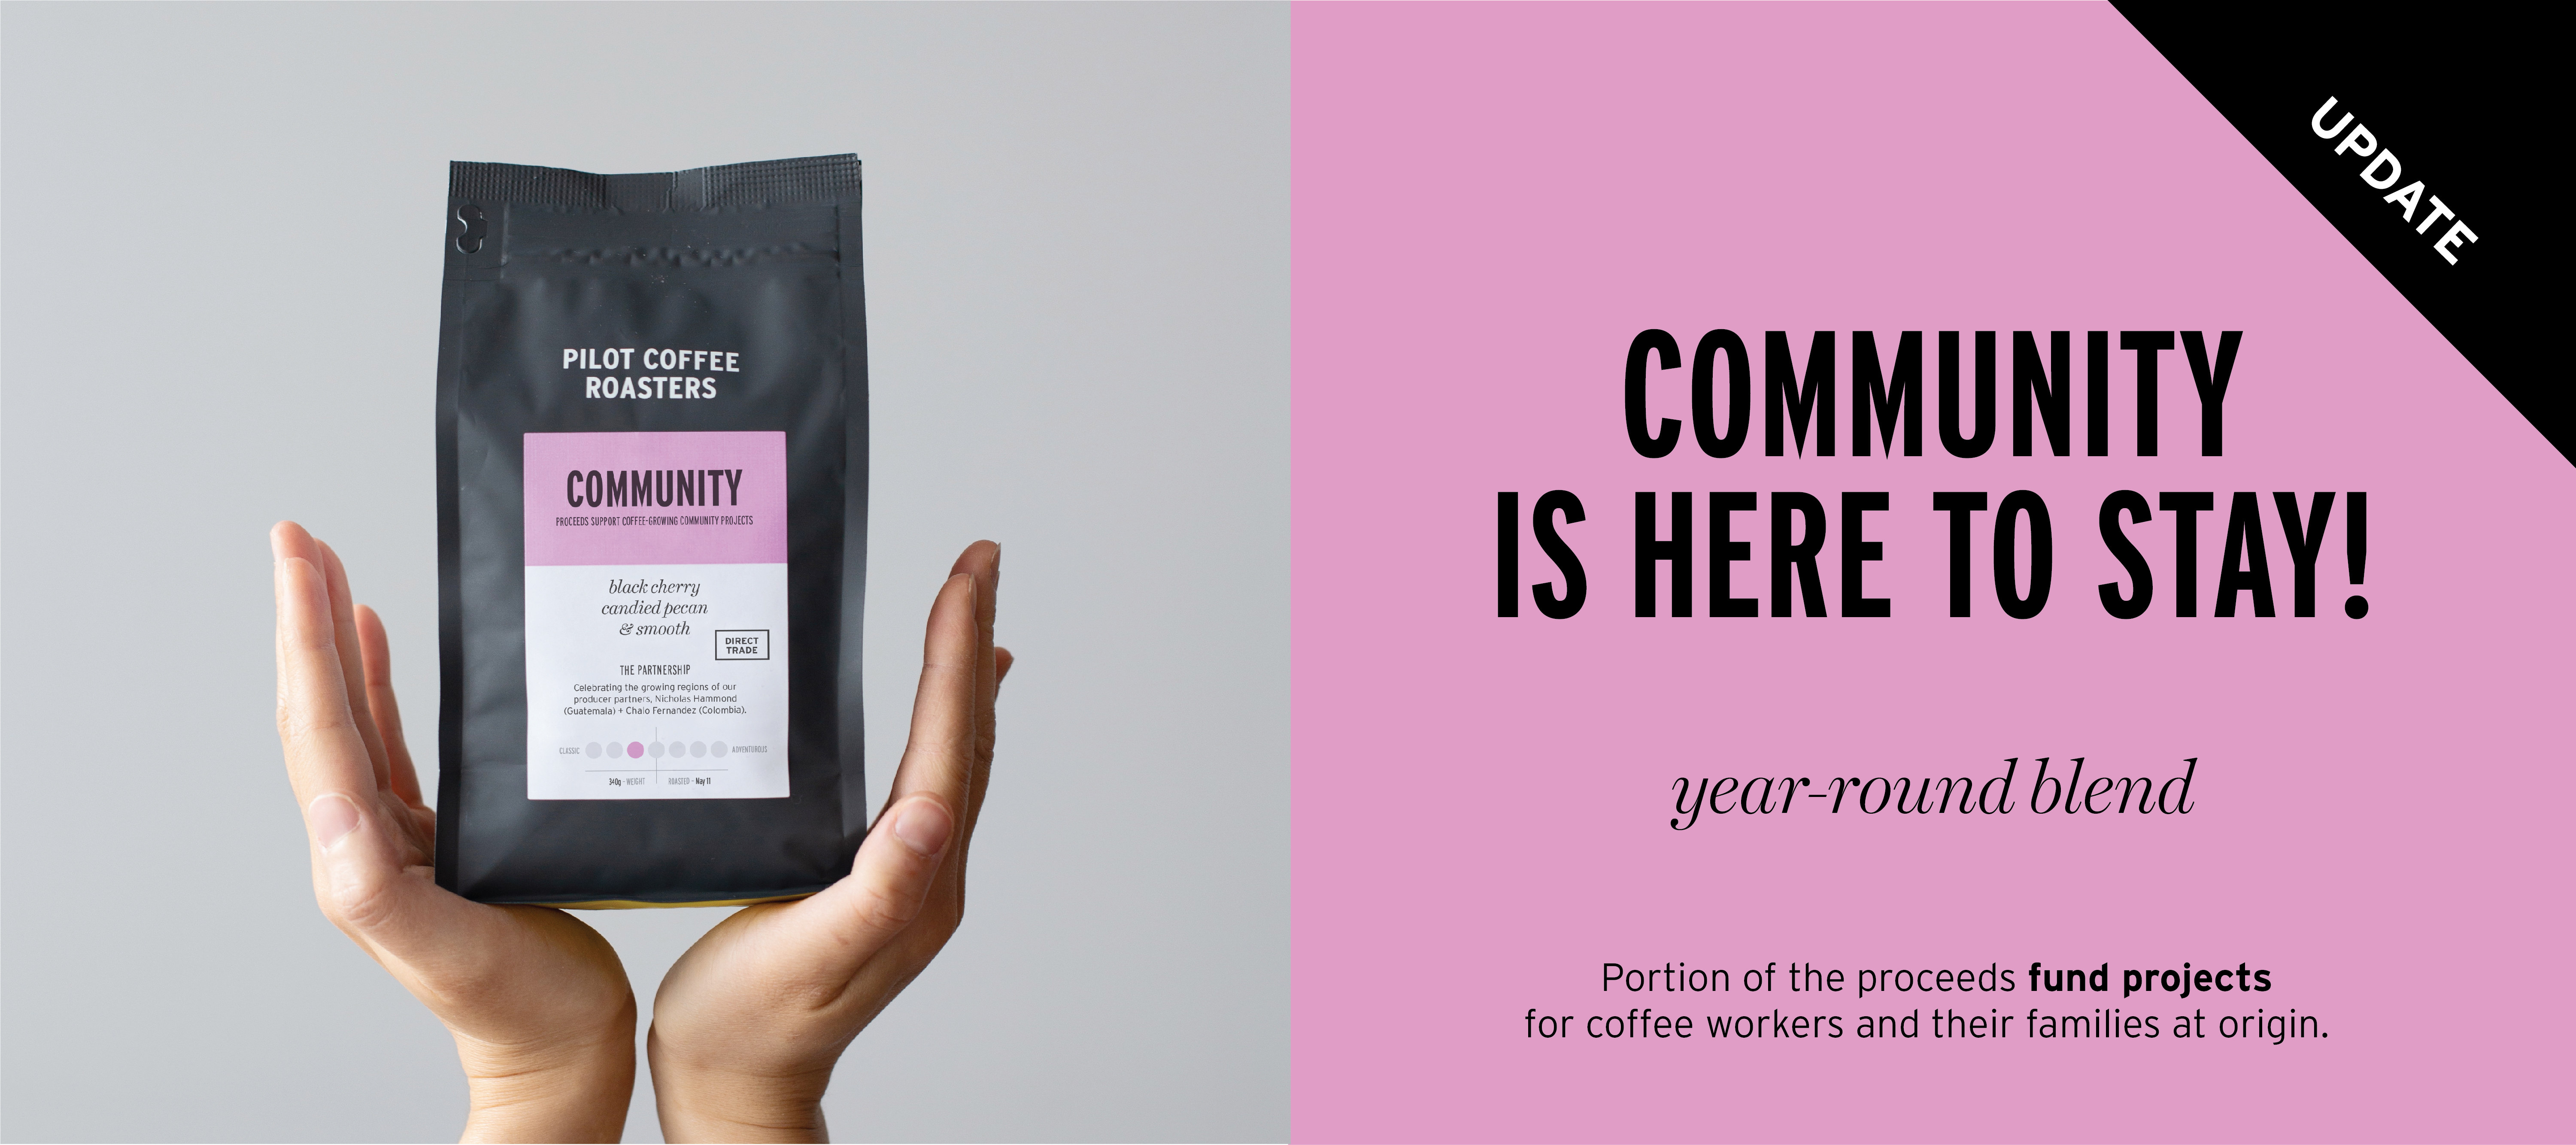 Year-round classic blend, proceeds fund projects for coffee workers and their families